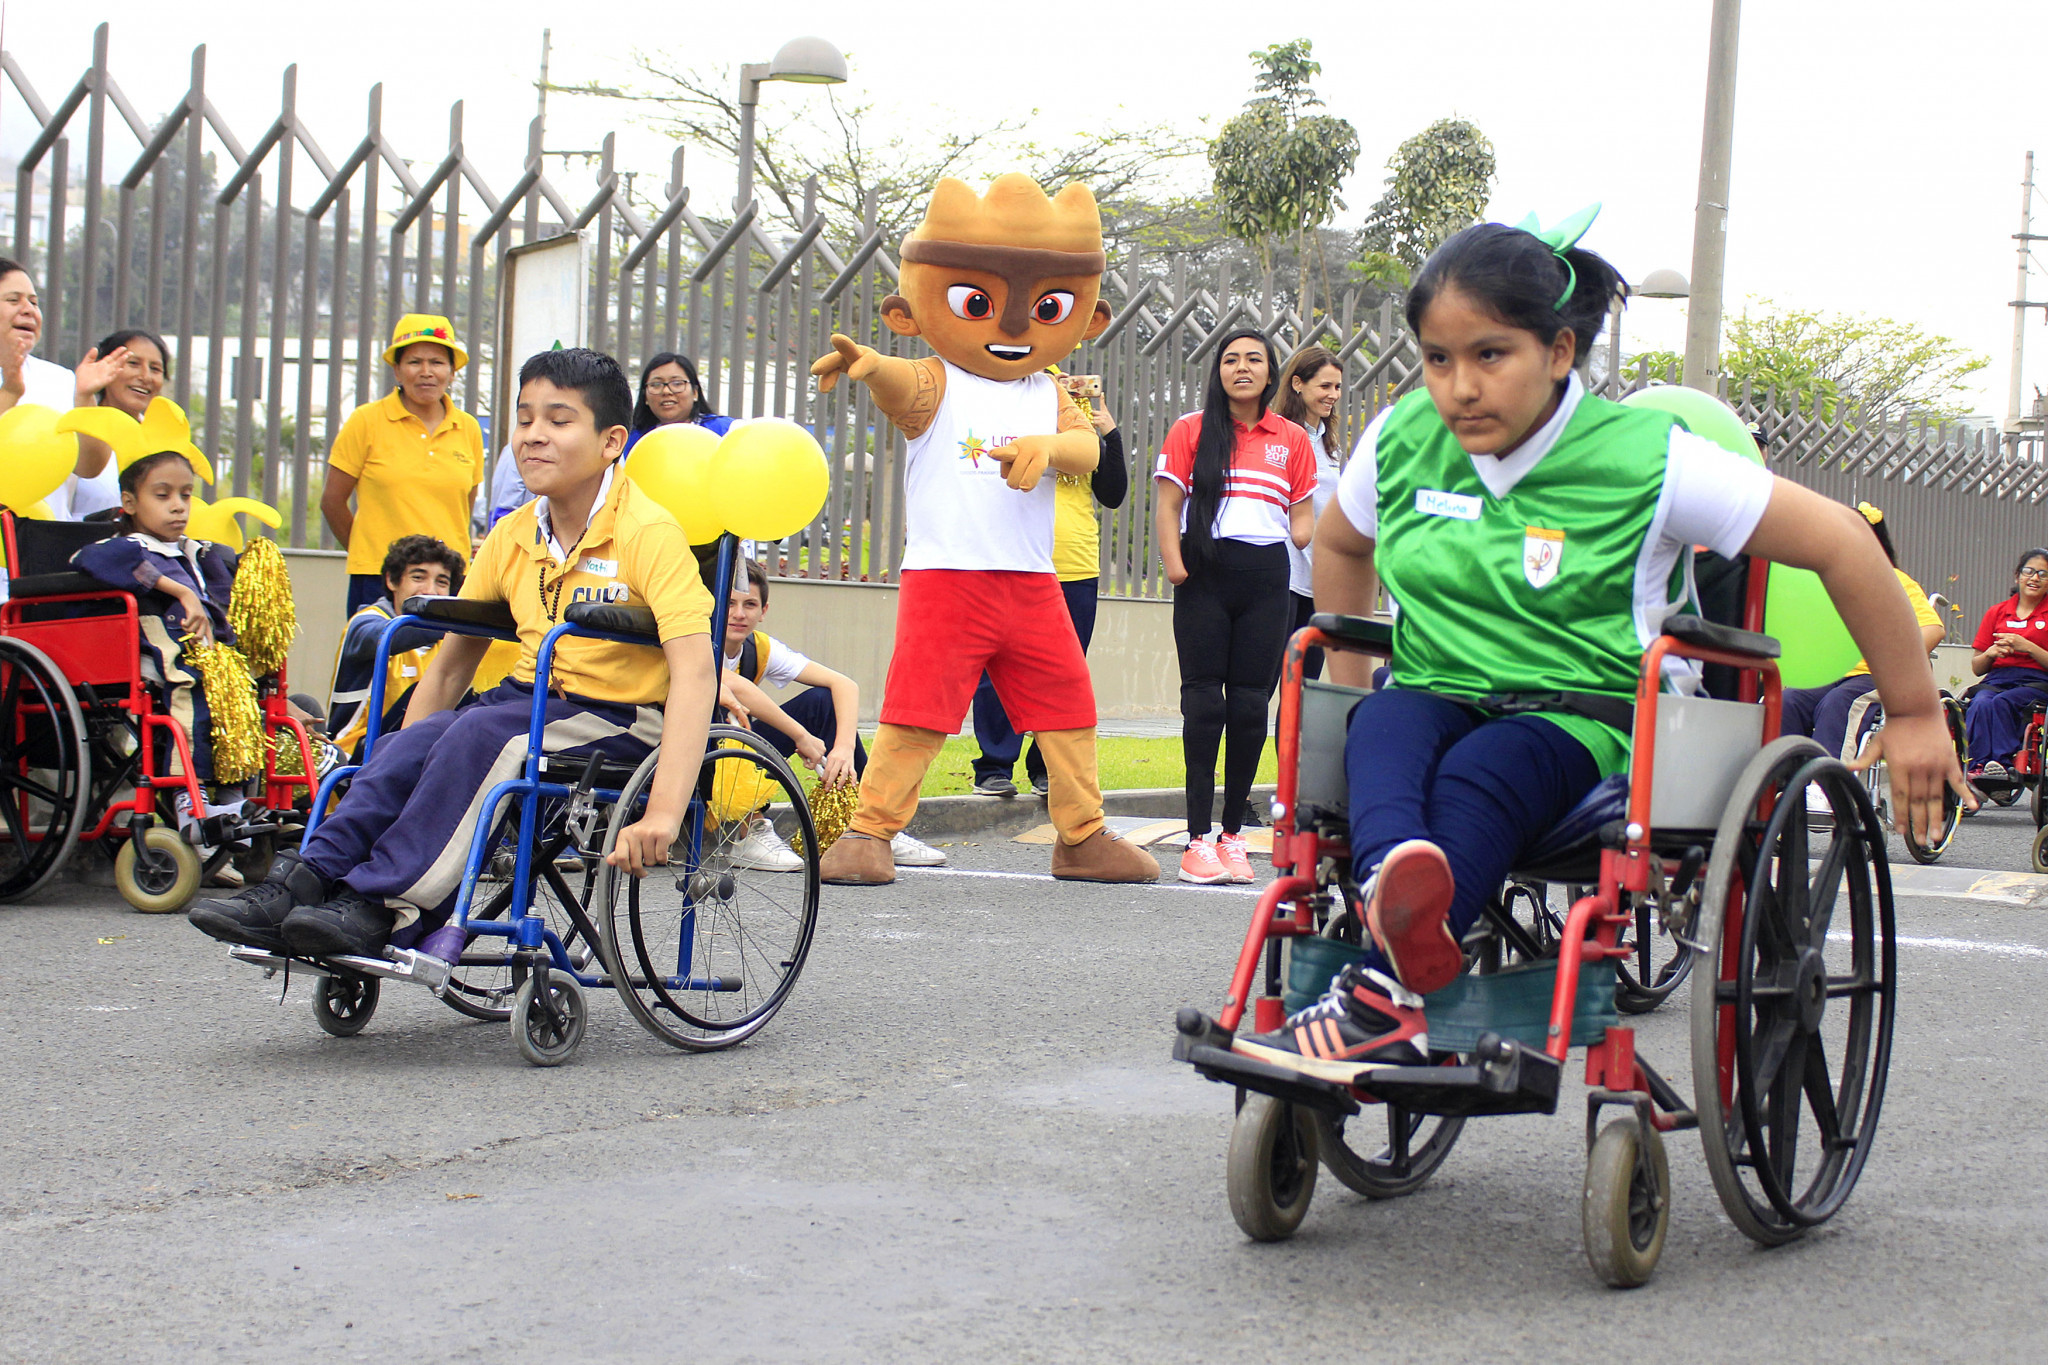 Lima 2019 sports ambassador Dunia Felices attended an event to promote the upcoming Parapan American Games in Peru's capital ©Lima 2019